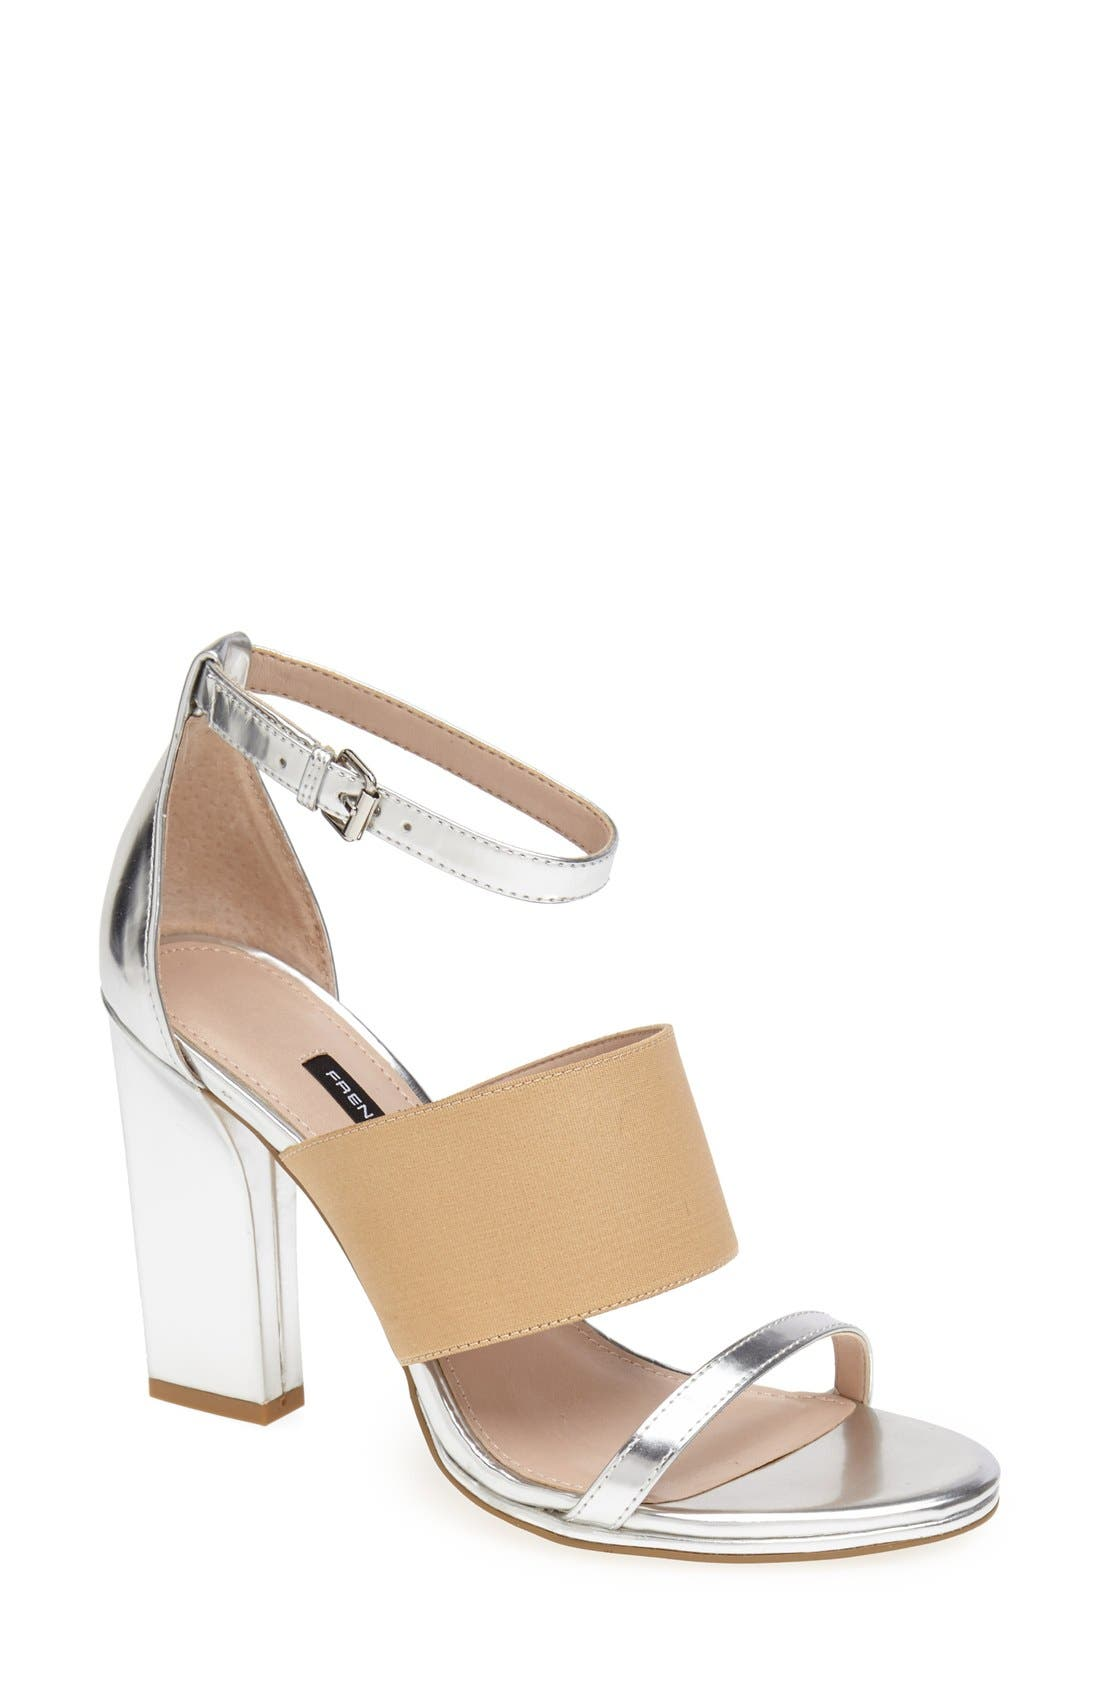 Main Image - French Connection 'Ina' Sandal